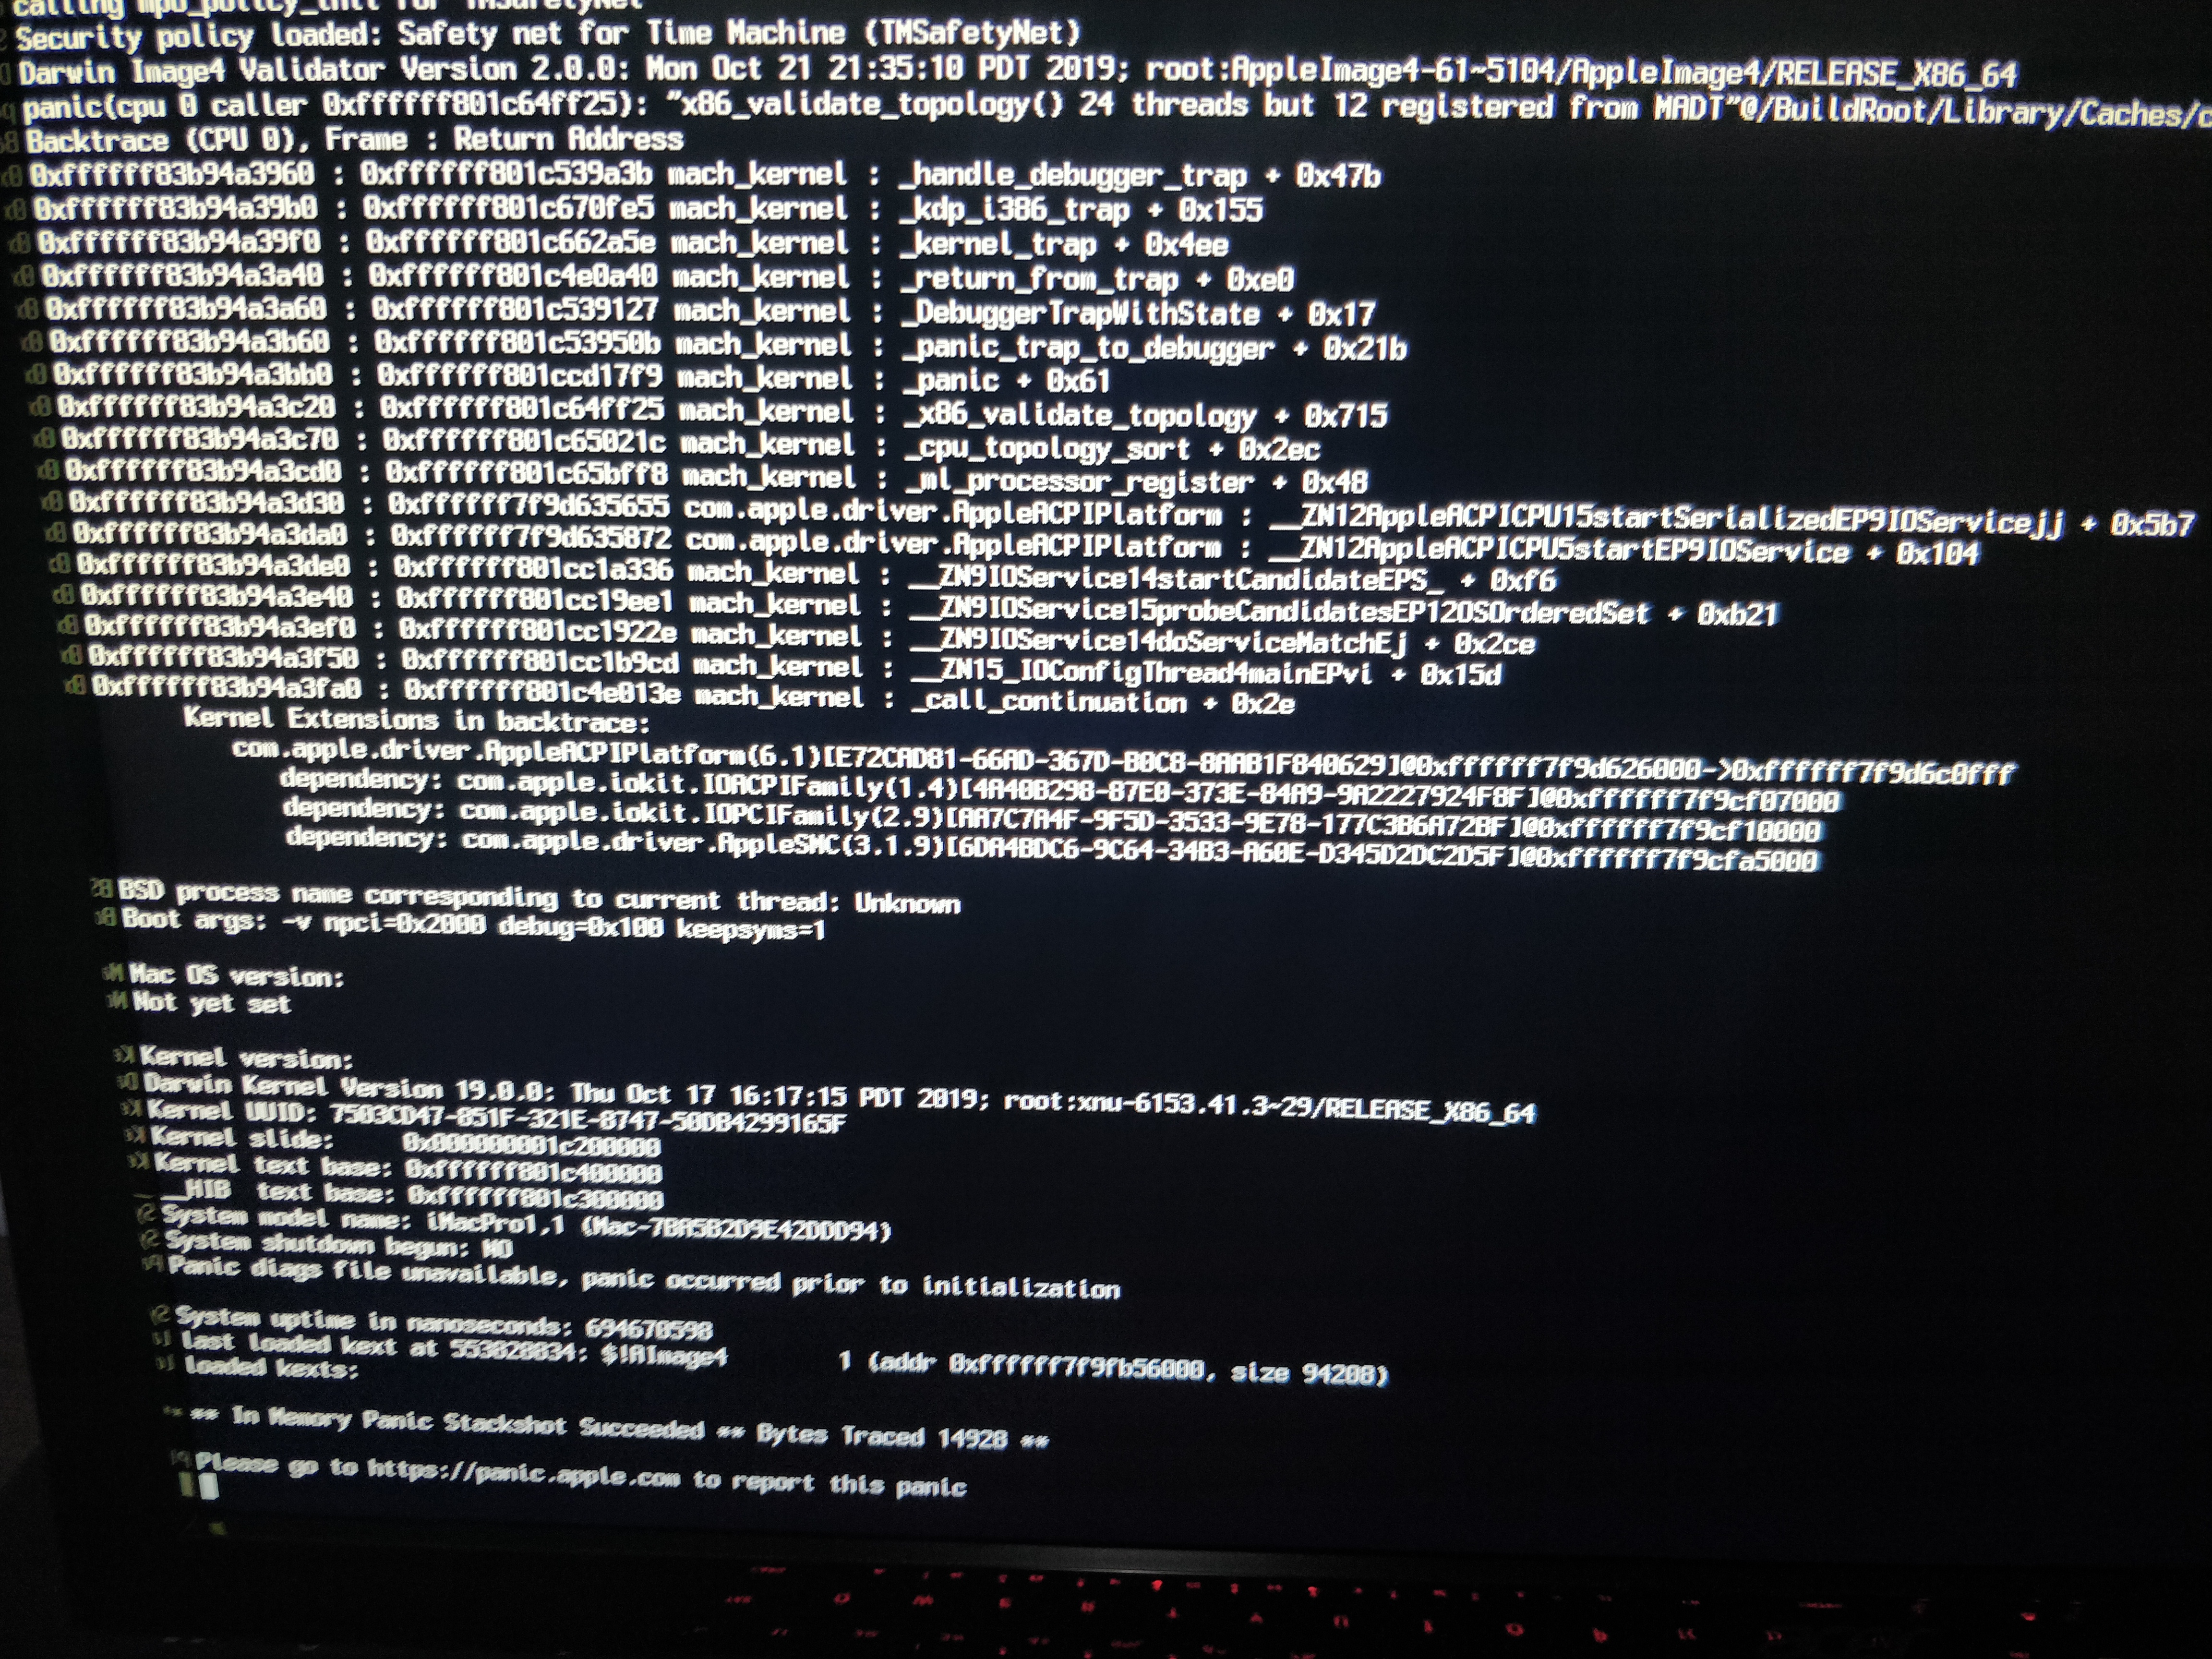 Please add support for 10 15 1 (19B88) Security Update